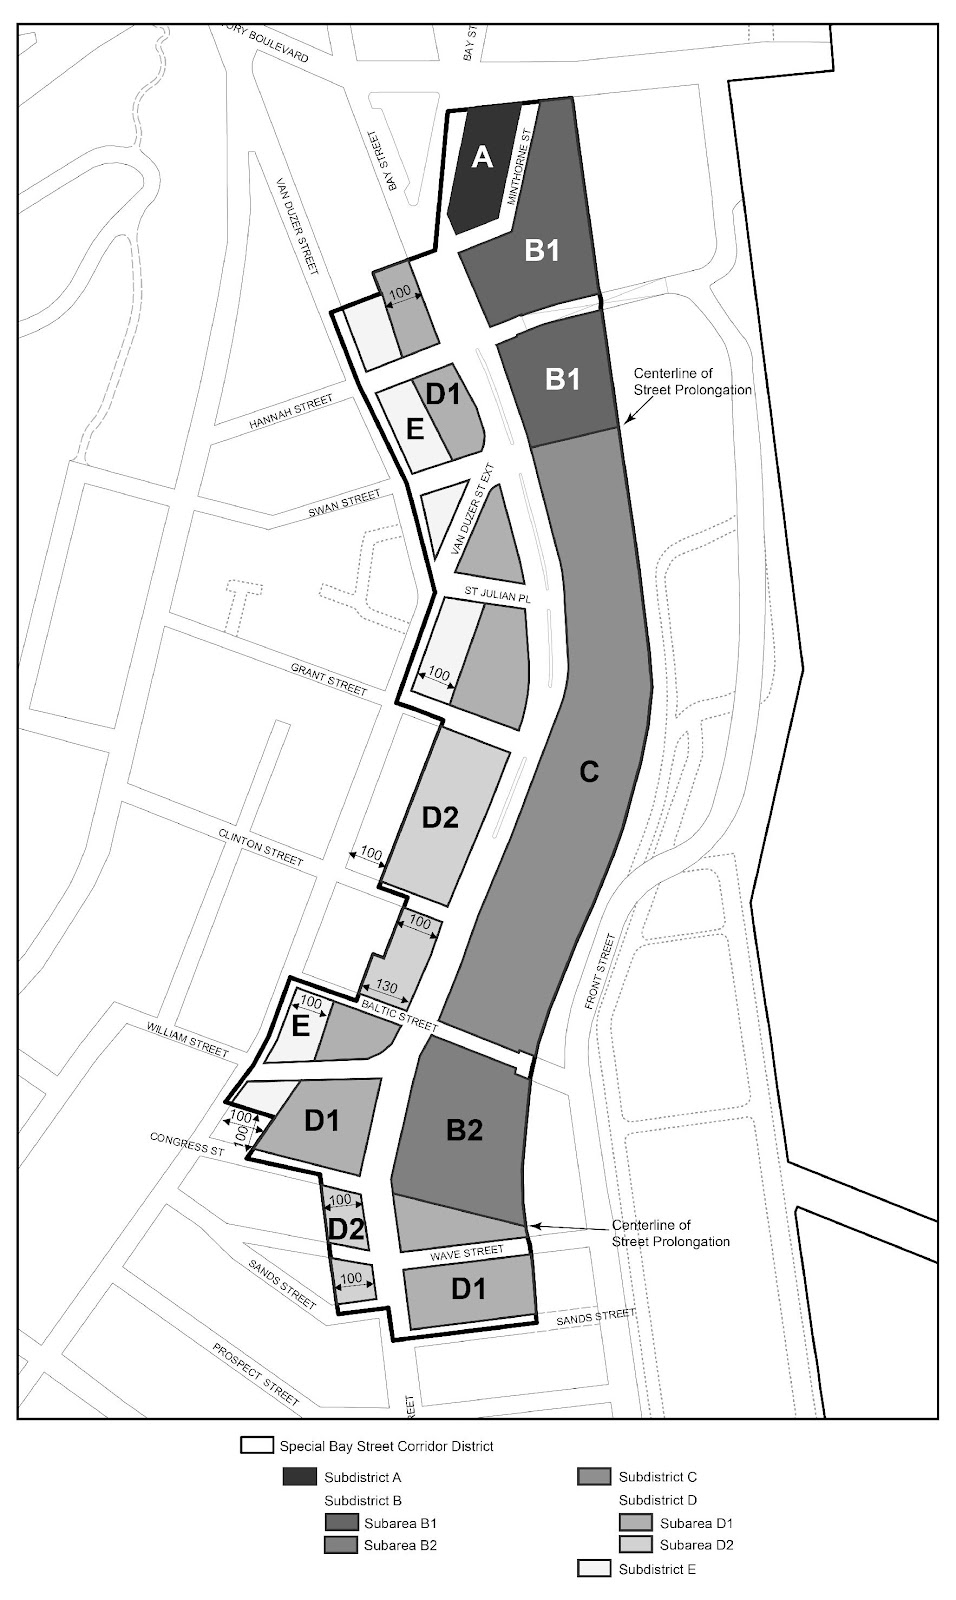 Zoning Resolutions Chapter 5: Special Bay Street Corridor District APPENDIX A.0